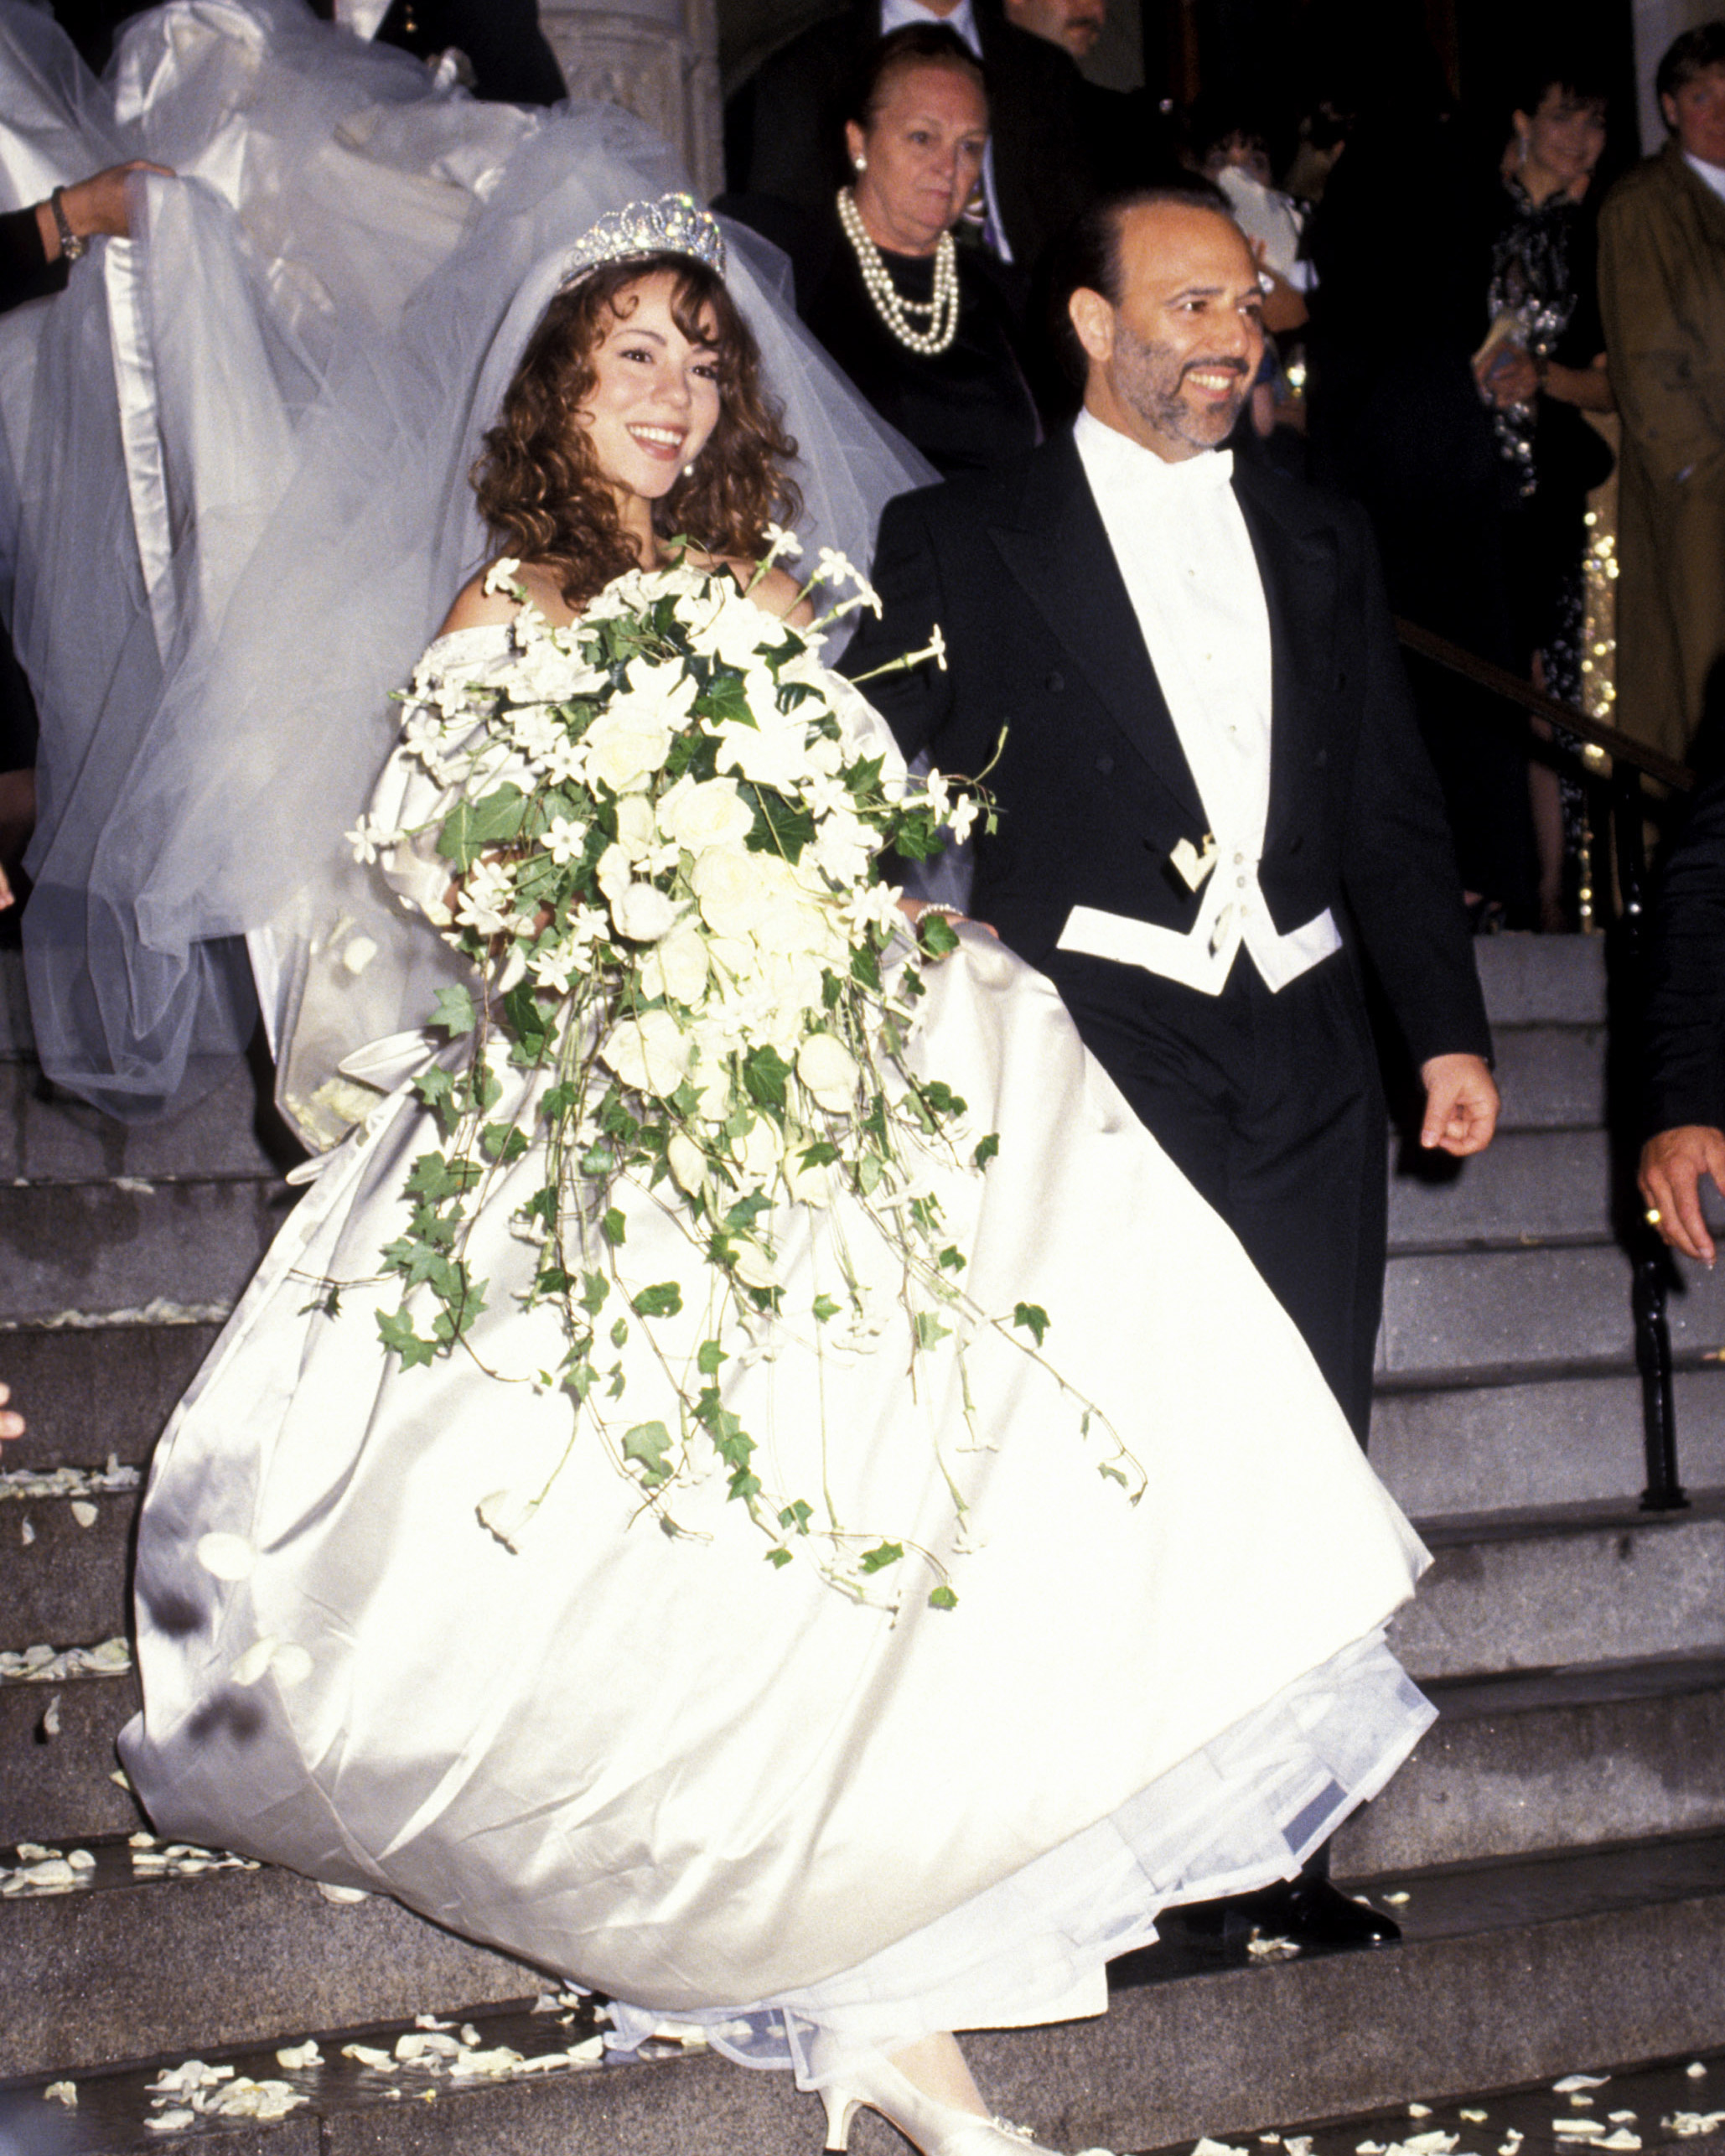 mariah-carey-tommy-mottola-iconic-rock-n-roll-wedding-photos-0717.jpg